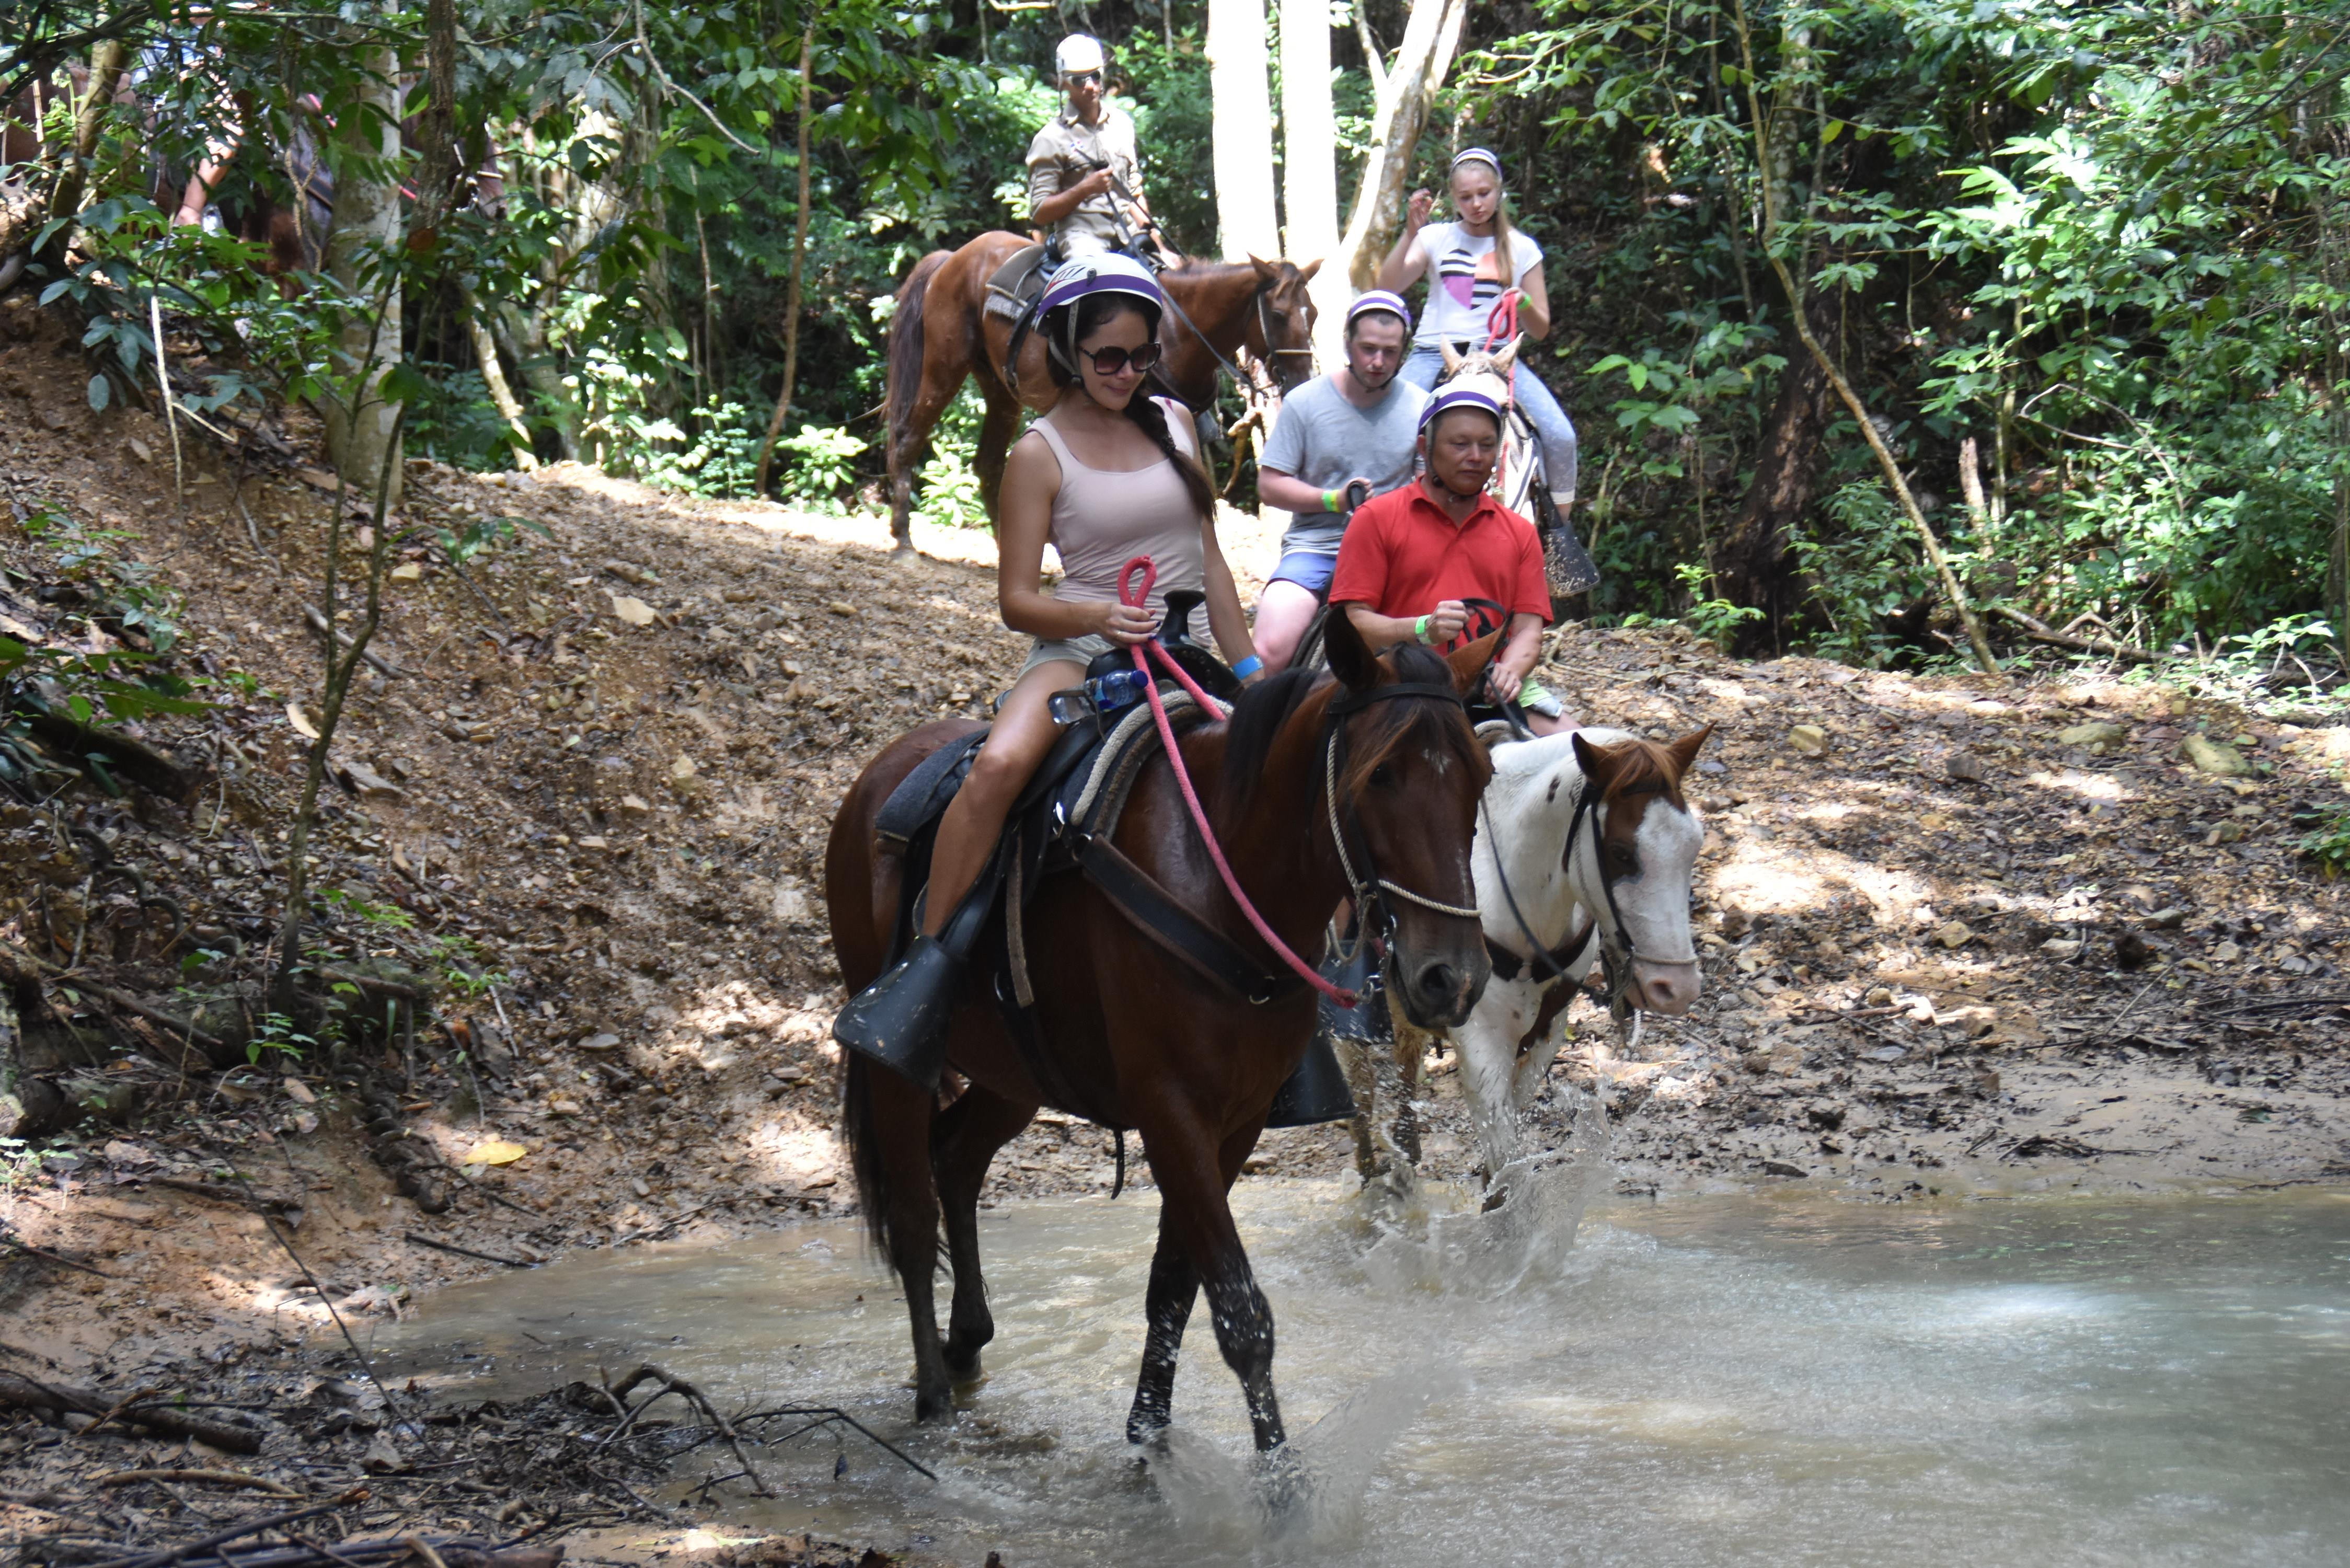 Woman riding a horse in adventure park